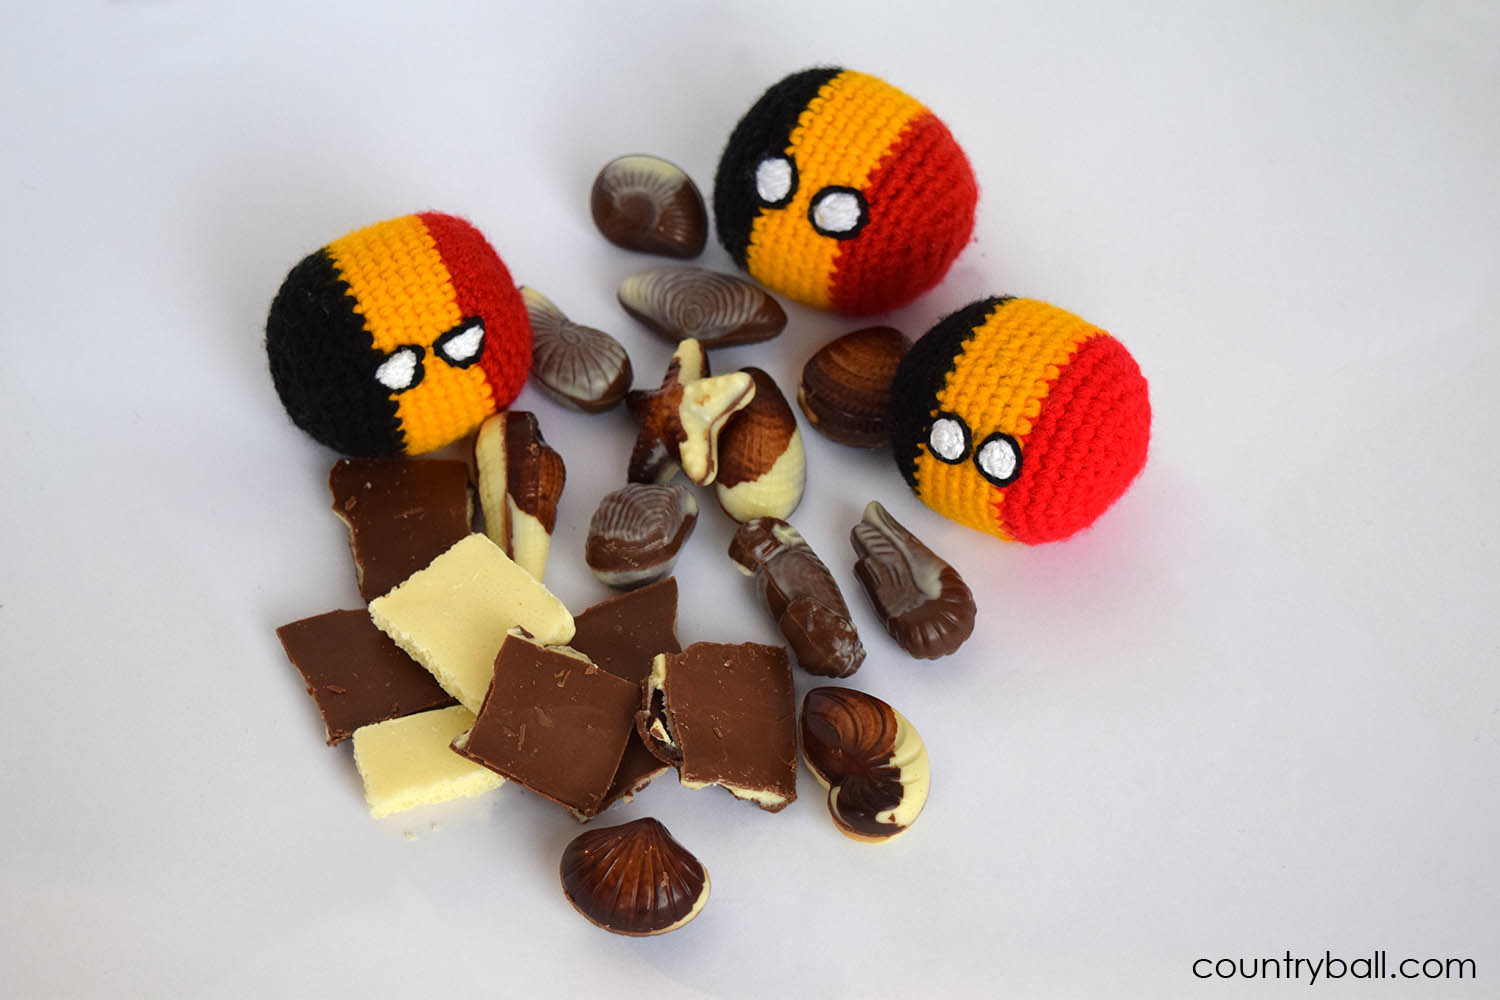 Belgiumball Loves Chocolate